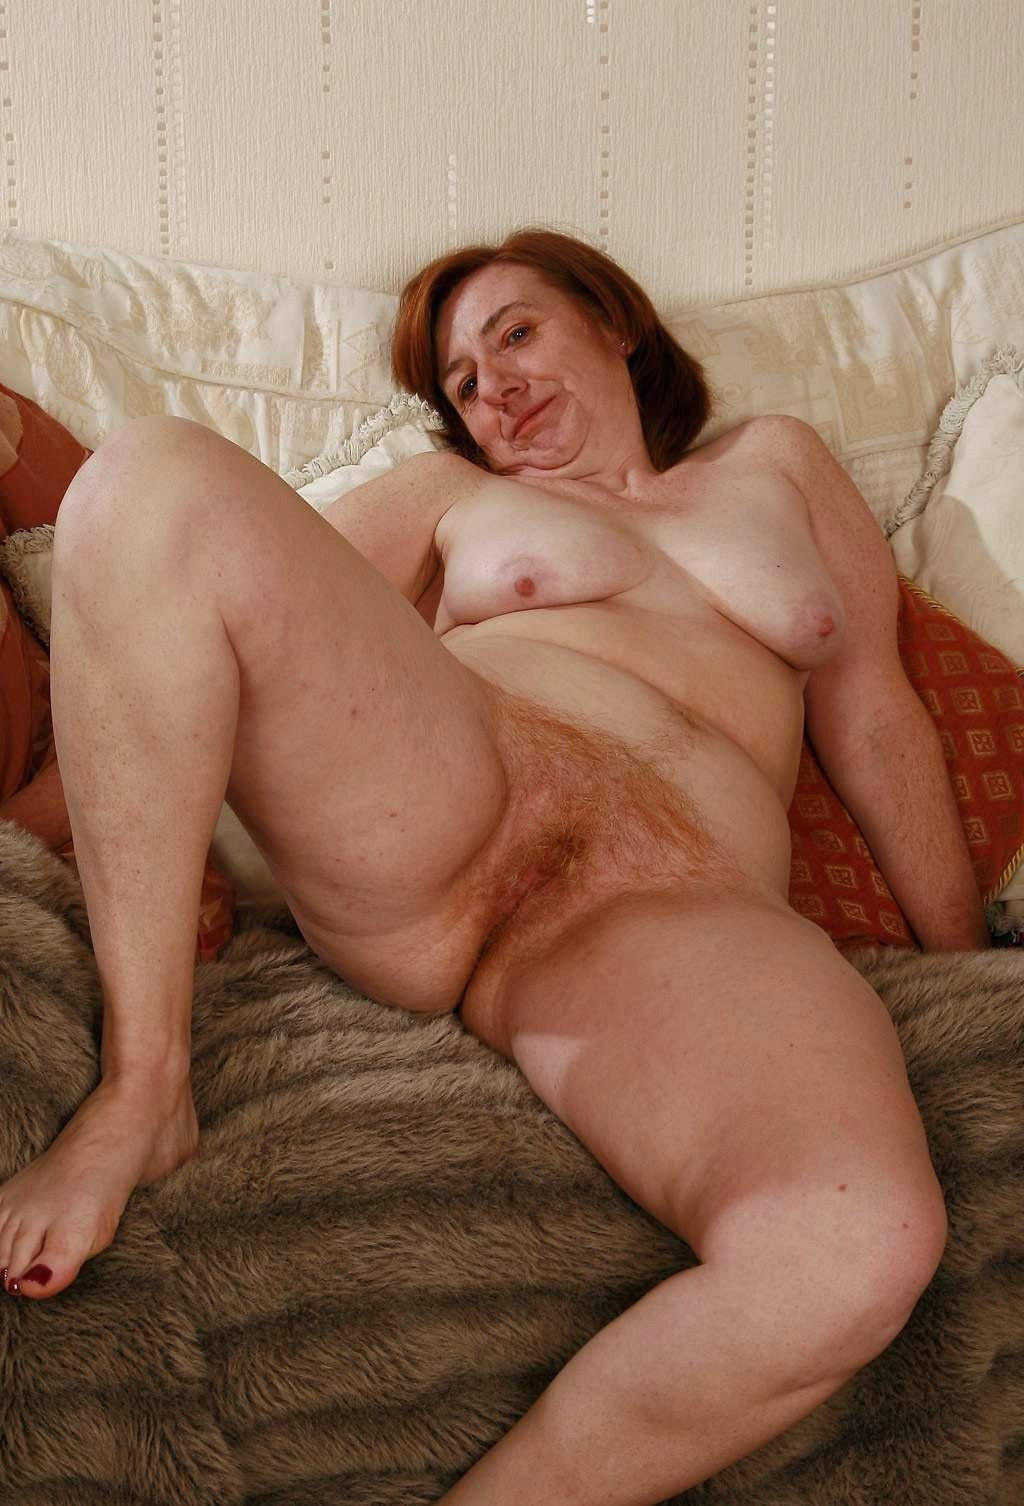 Poor redhead granny fuck perfect girl fuck!